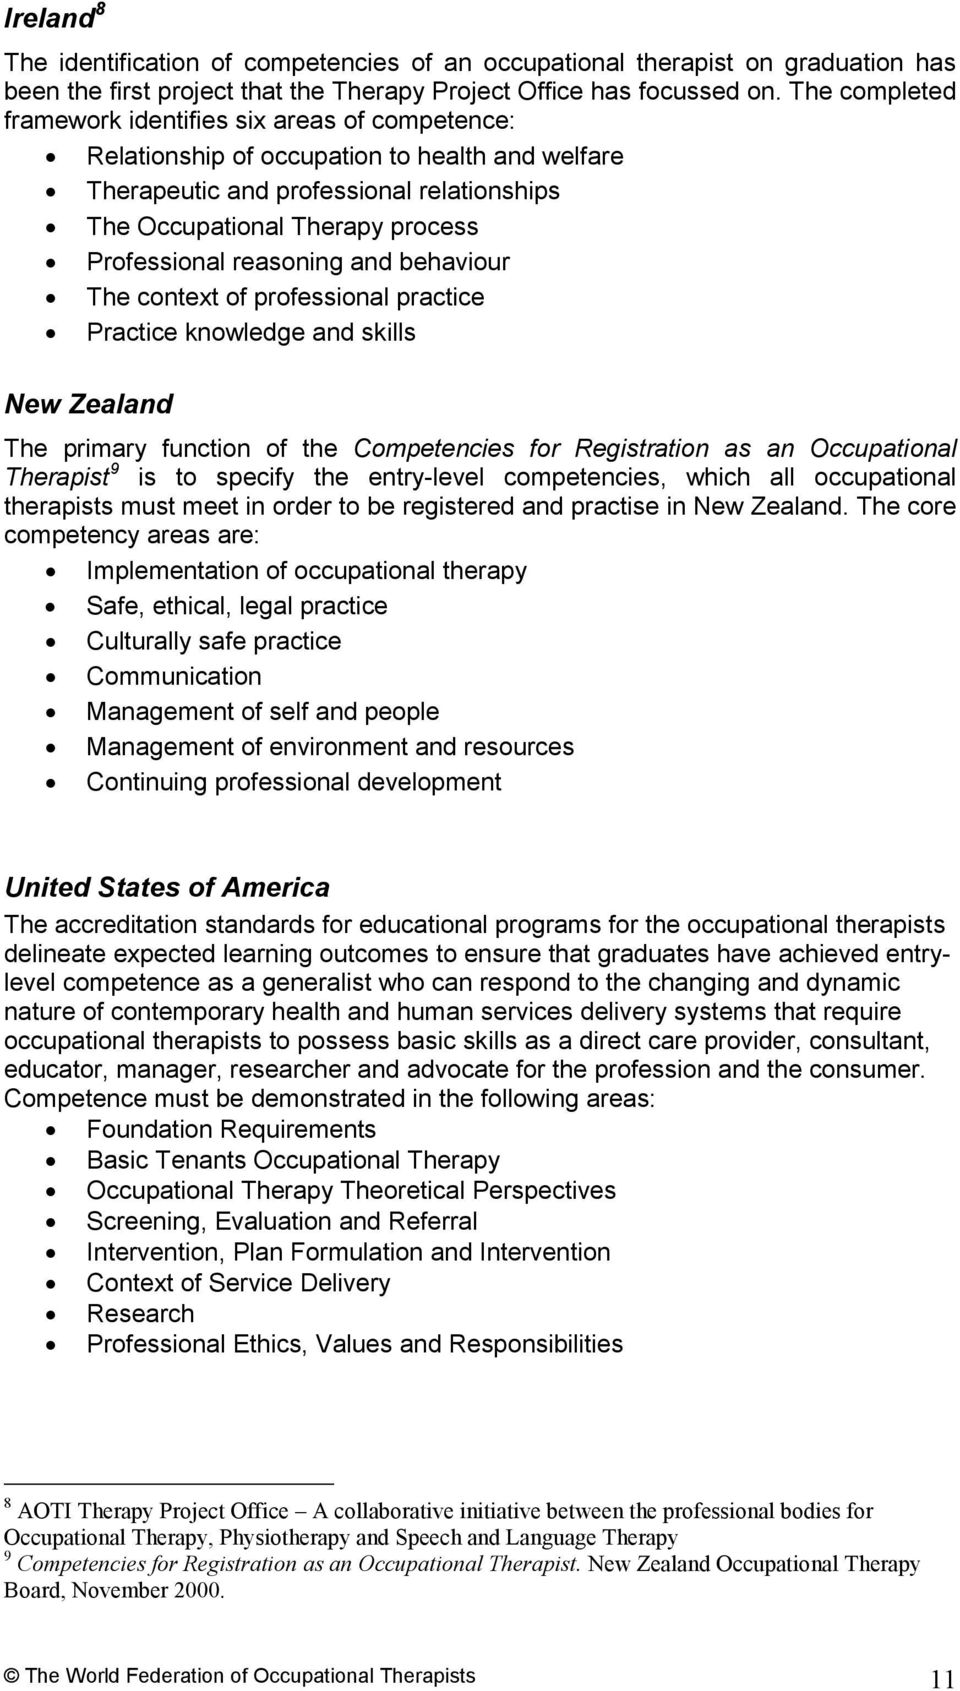 reasoning and behaviour The context of professional practice Practice knowledge and skills New Zealand The primary function of the Competencies for Registration as an Occupational Therapist 9 is to